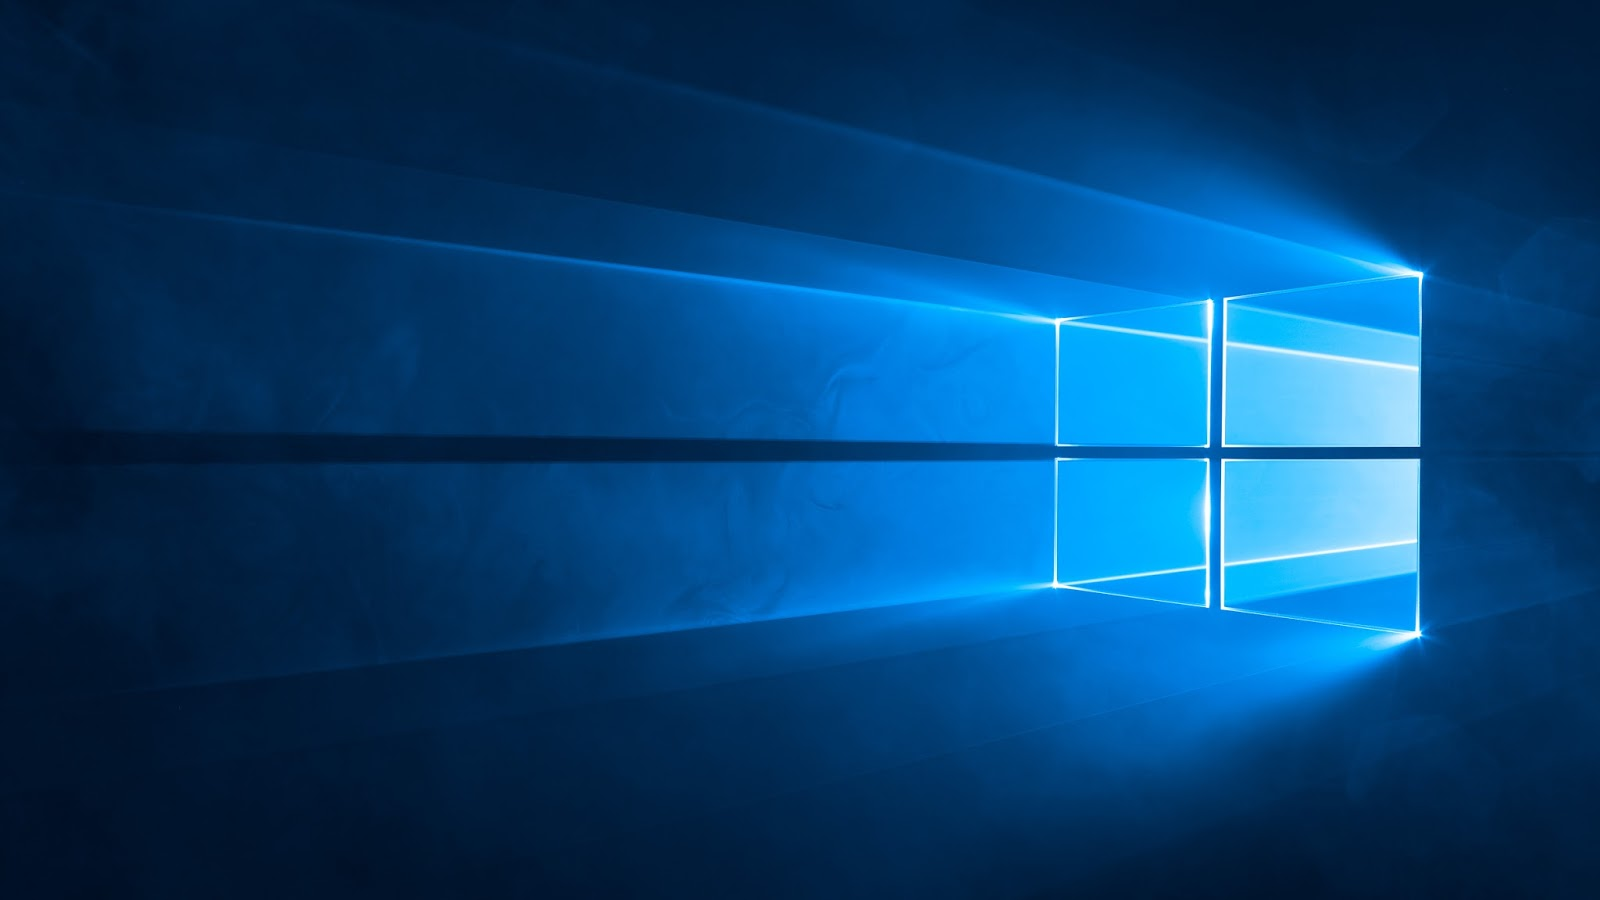 windows-10-hero-image-download